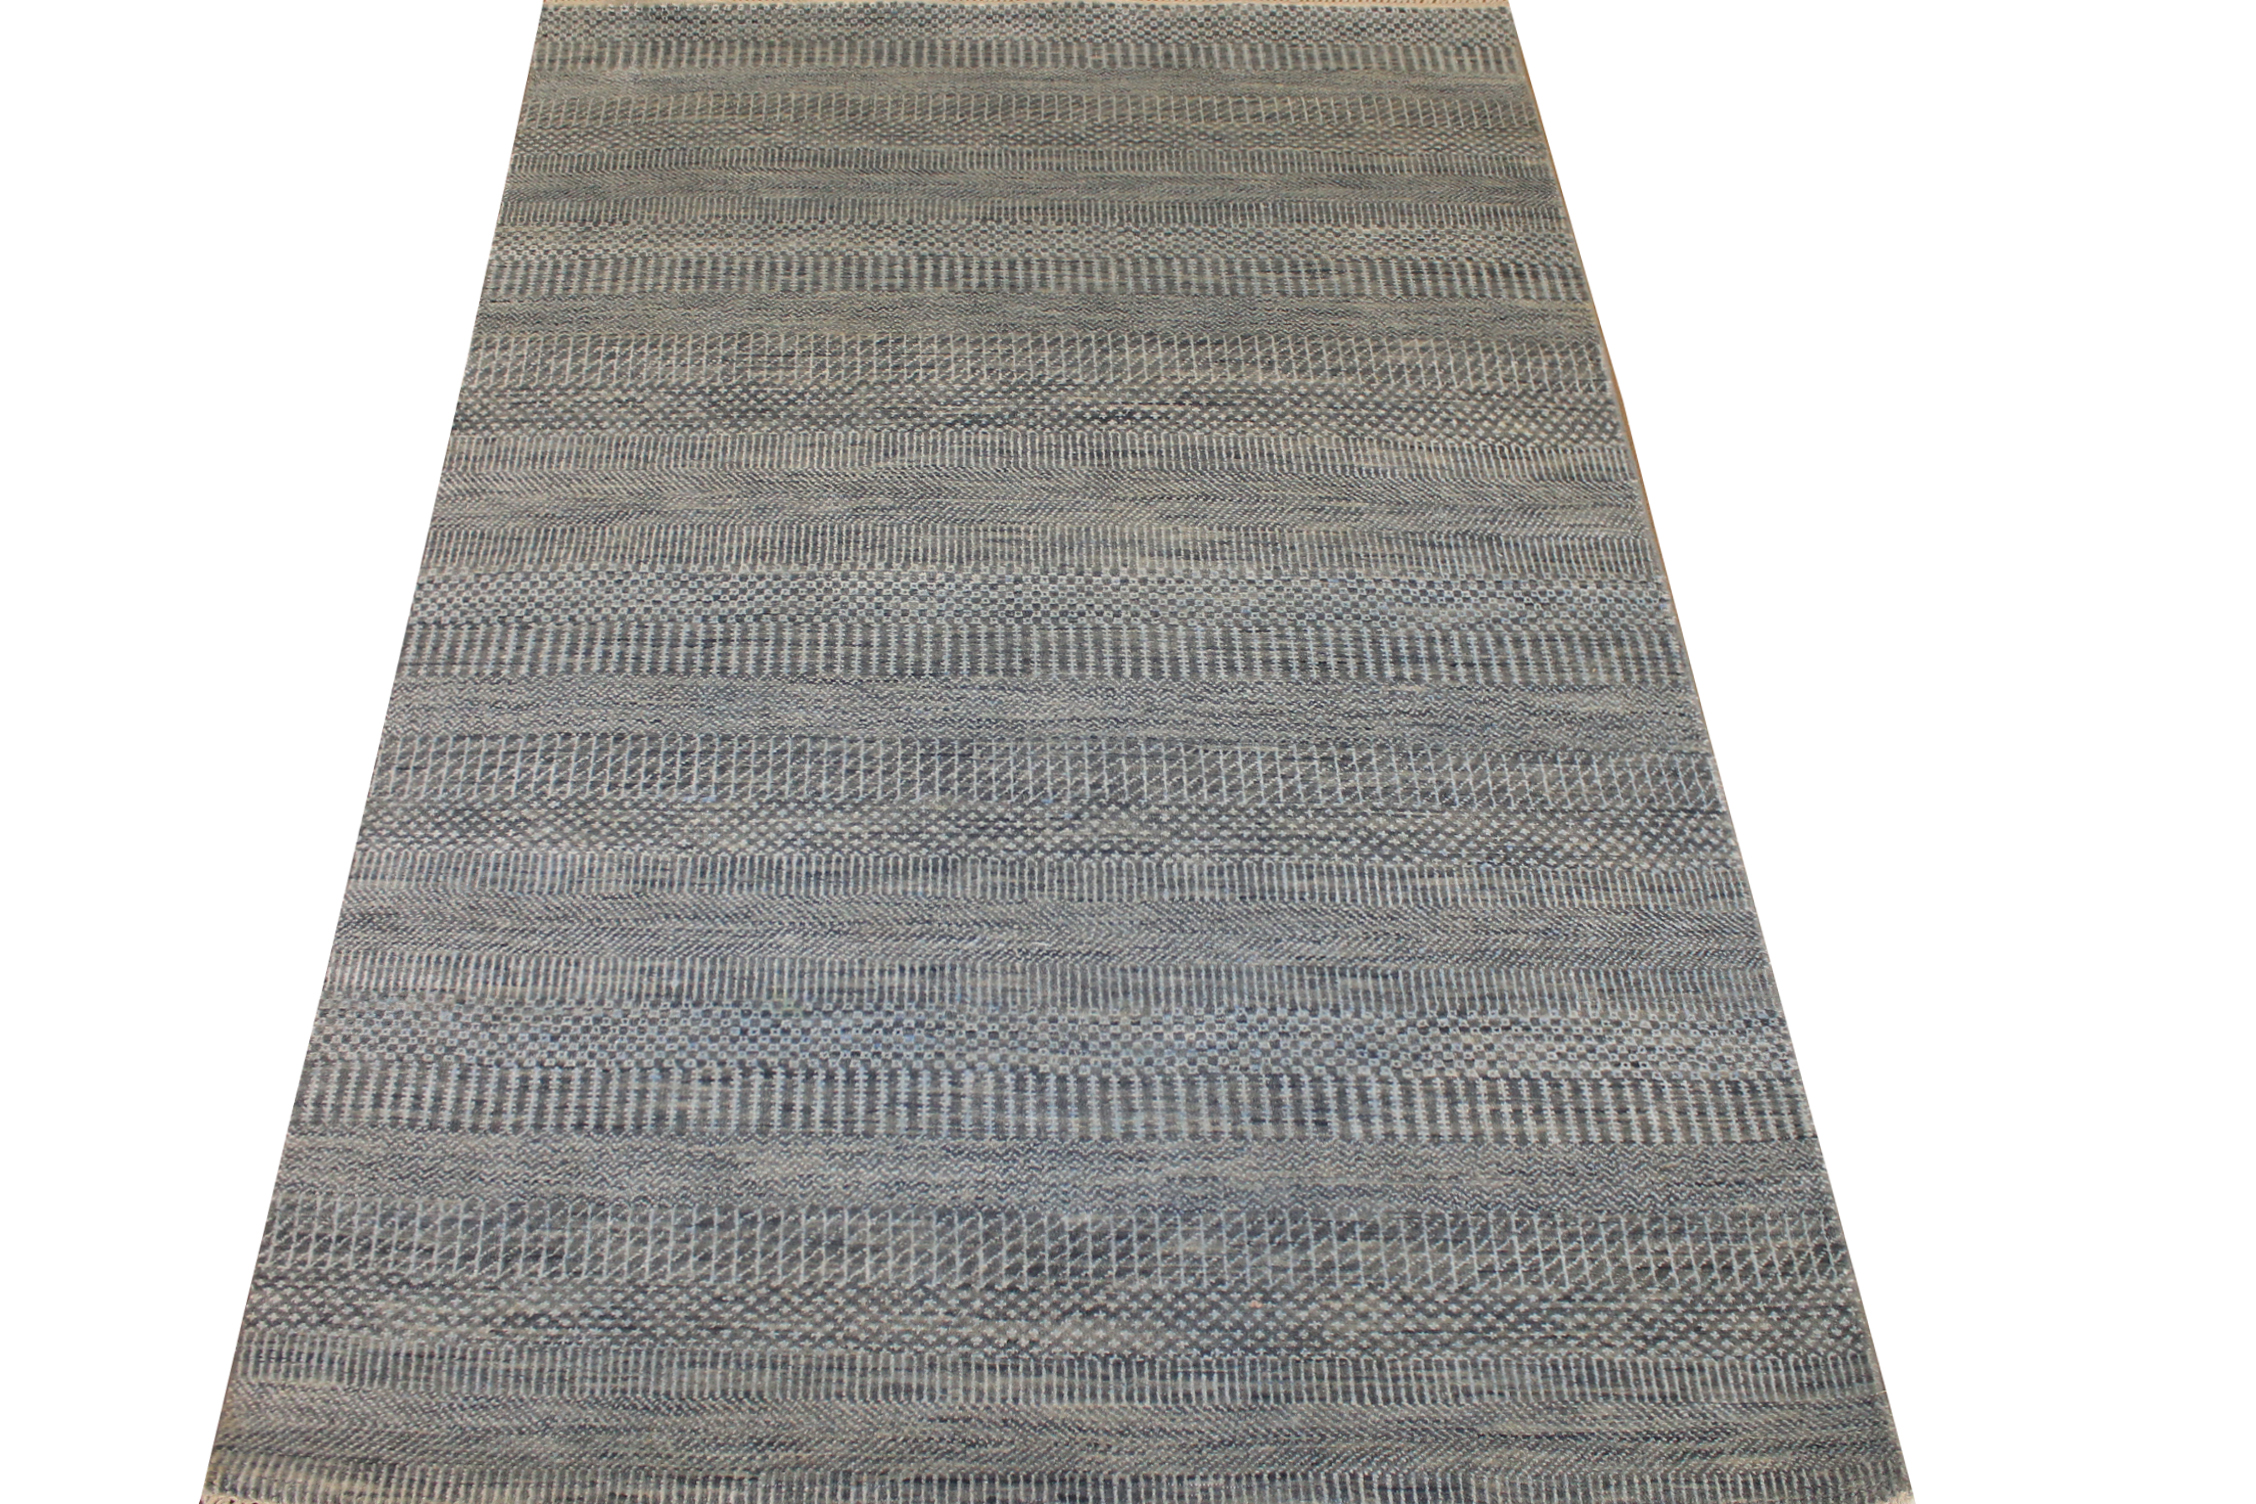 4x6 Casual Hand Knotted Wool & Viscose Area Rug - MR025103